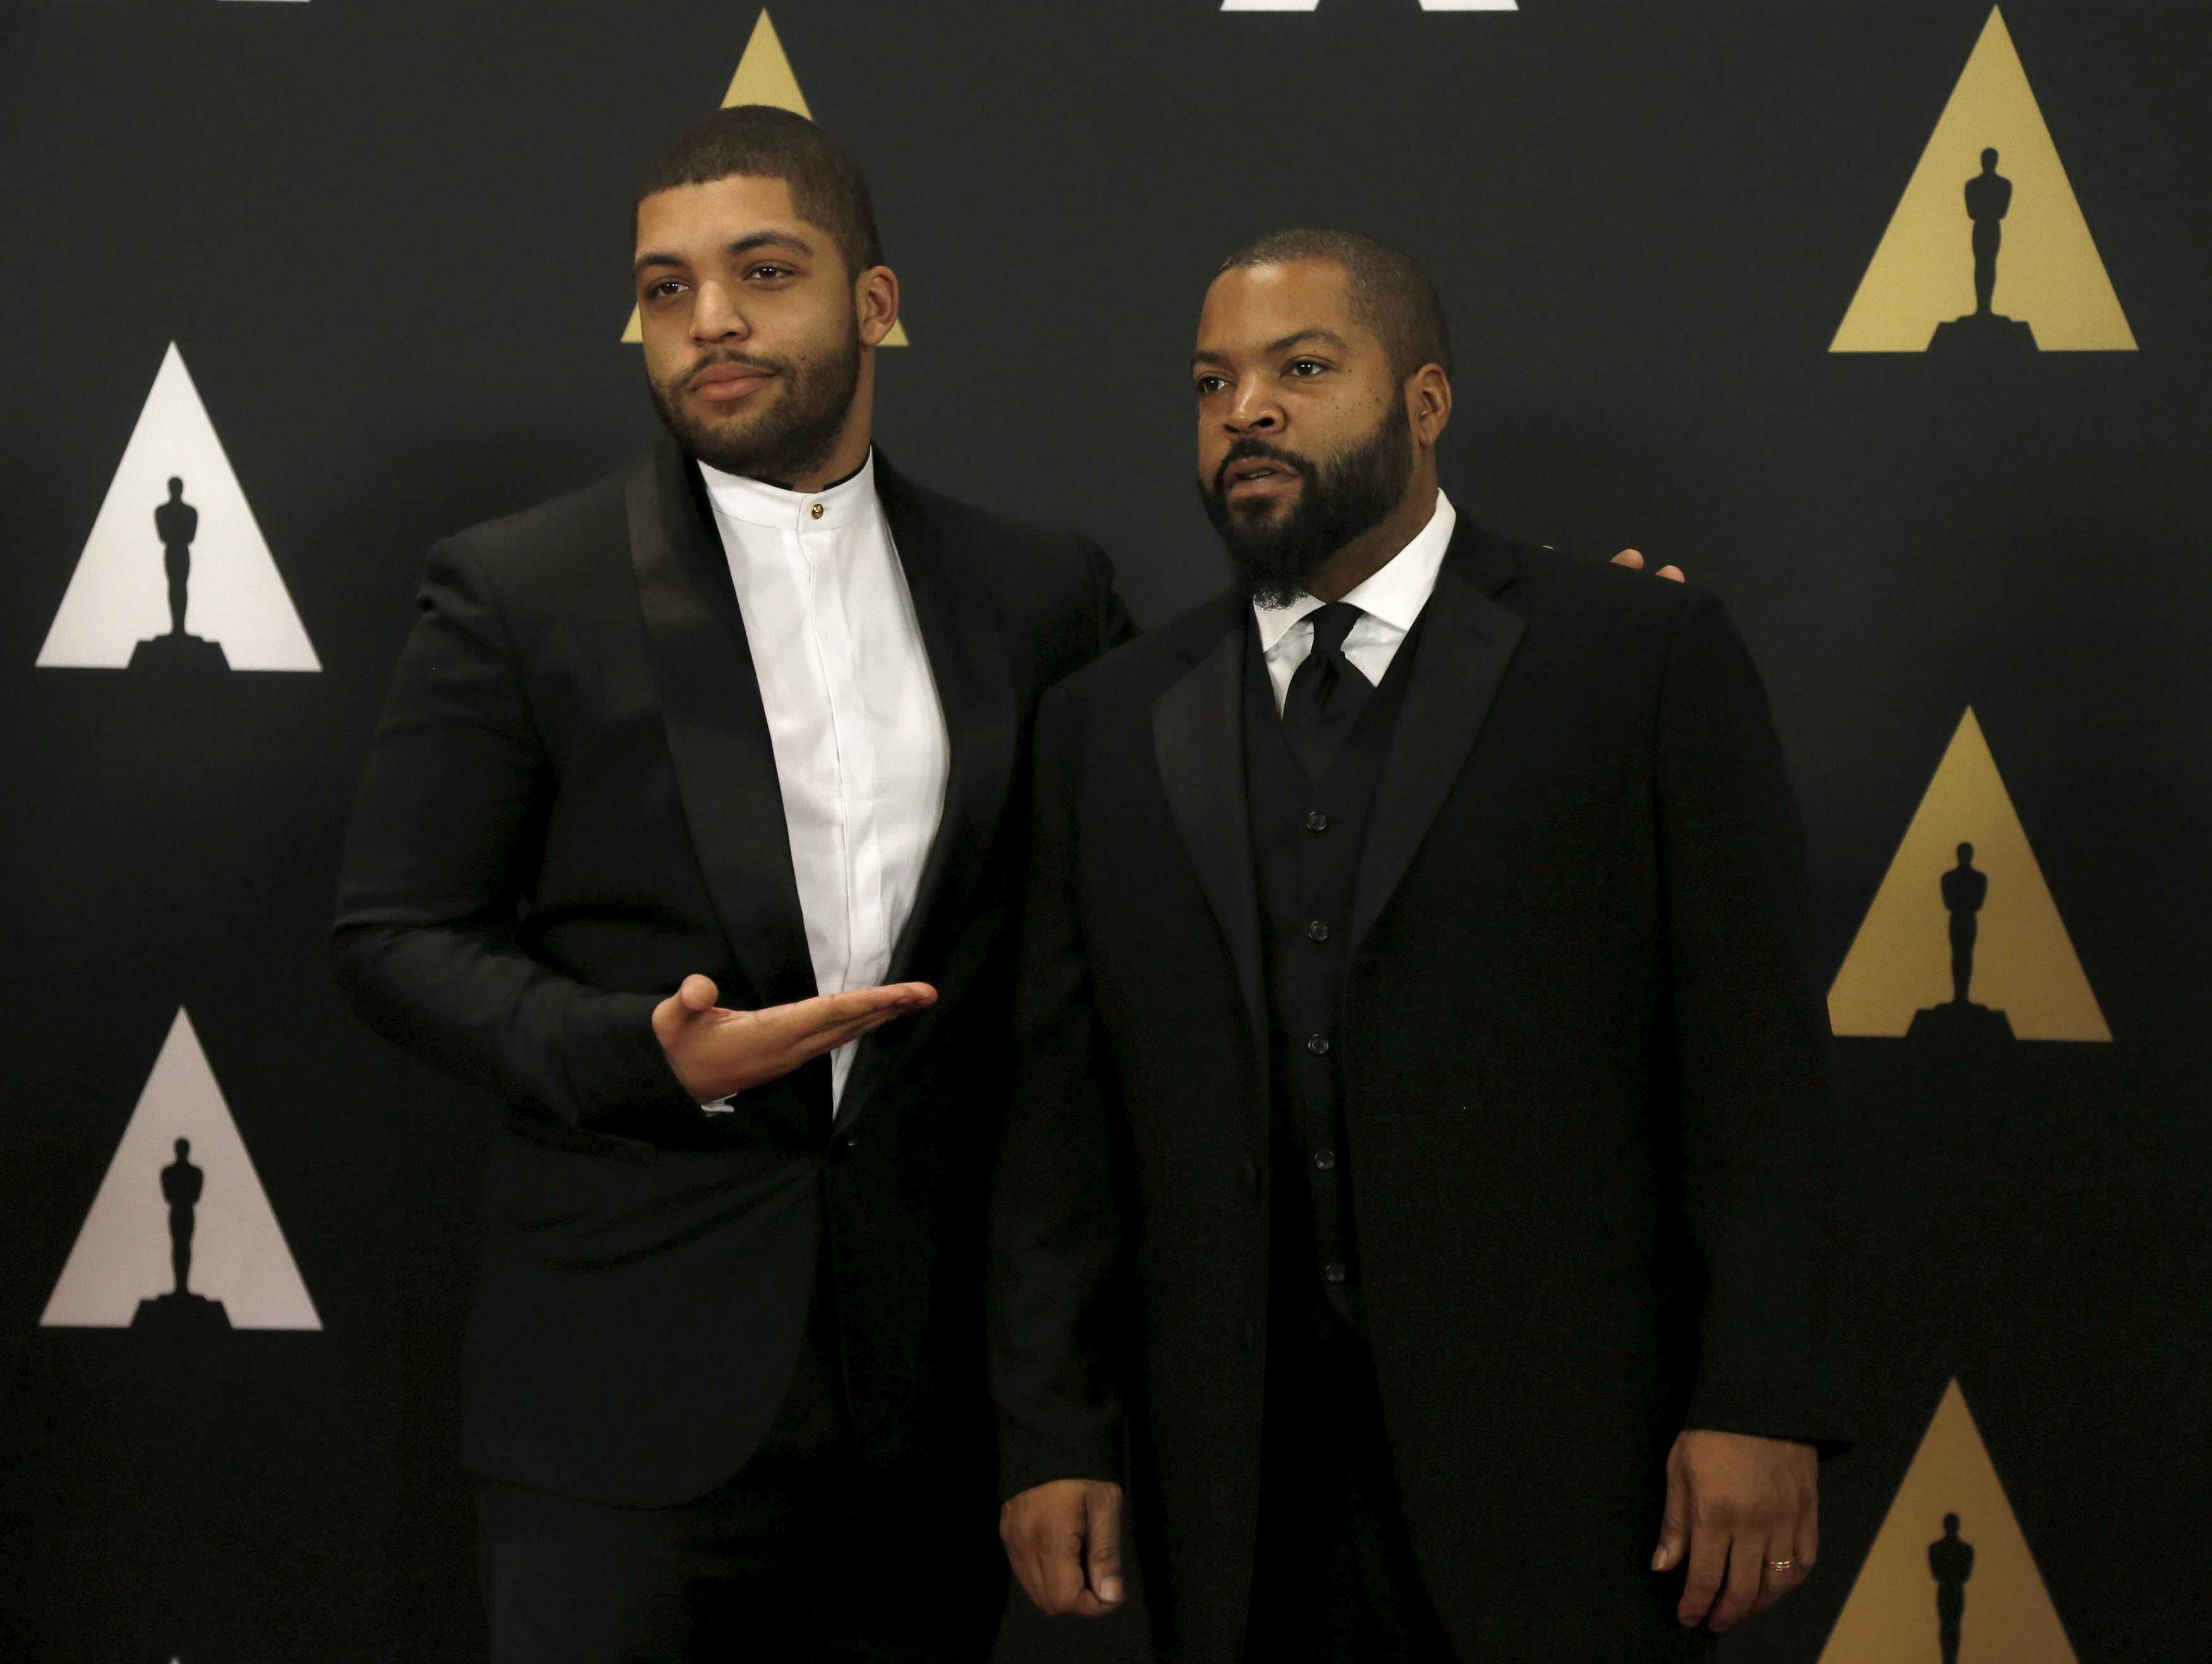 Ice Cube (R) and his son O'Shea Jackson, Jr. pose at the 7th Annual Academy of Motion Picture Arts and Sciences Governors Awards at The Ray Dolby Ballroom in Hollywood, California November 14, 2015. Ice Cube is a revert to Islam. Mario Anzuoni / Reuters